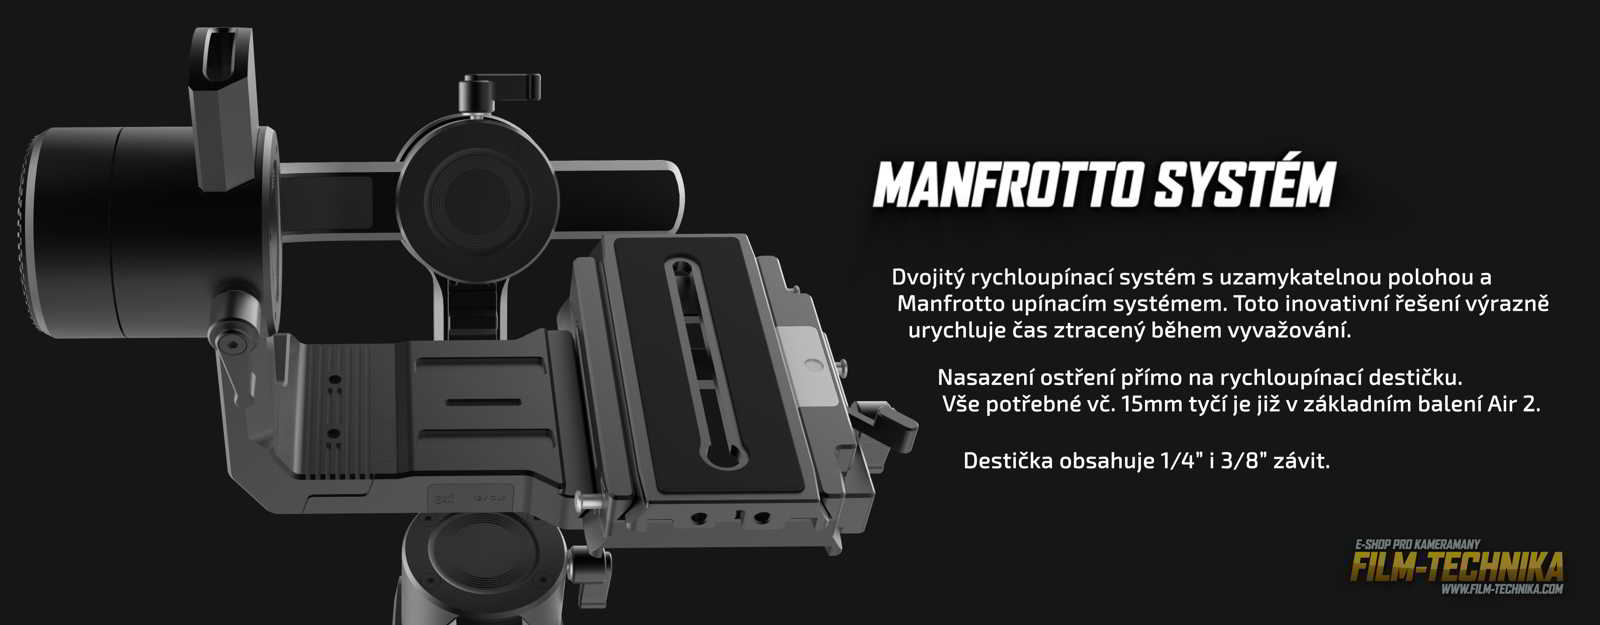 Manfrotto - LQ